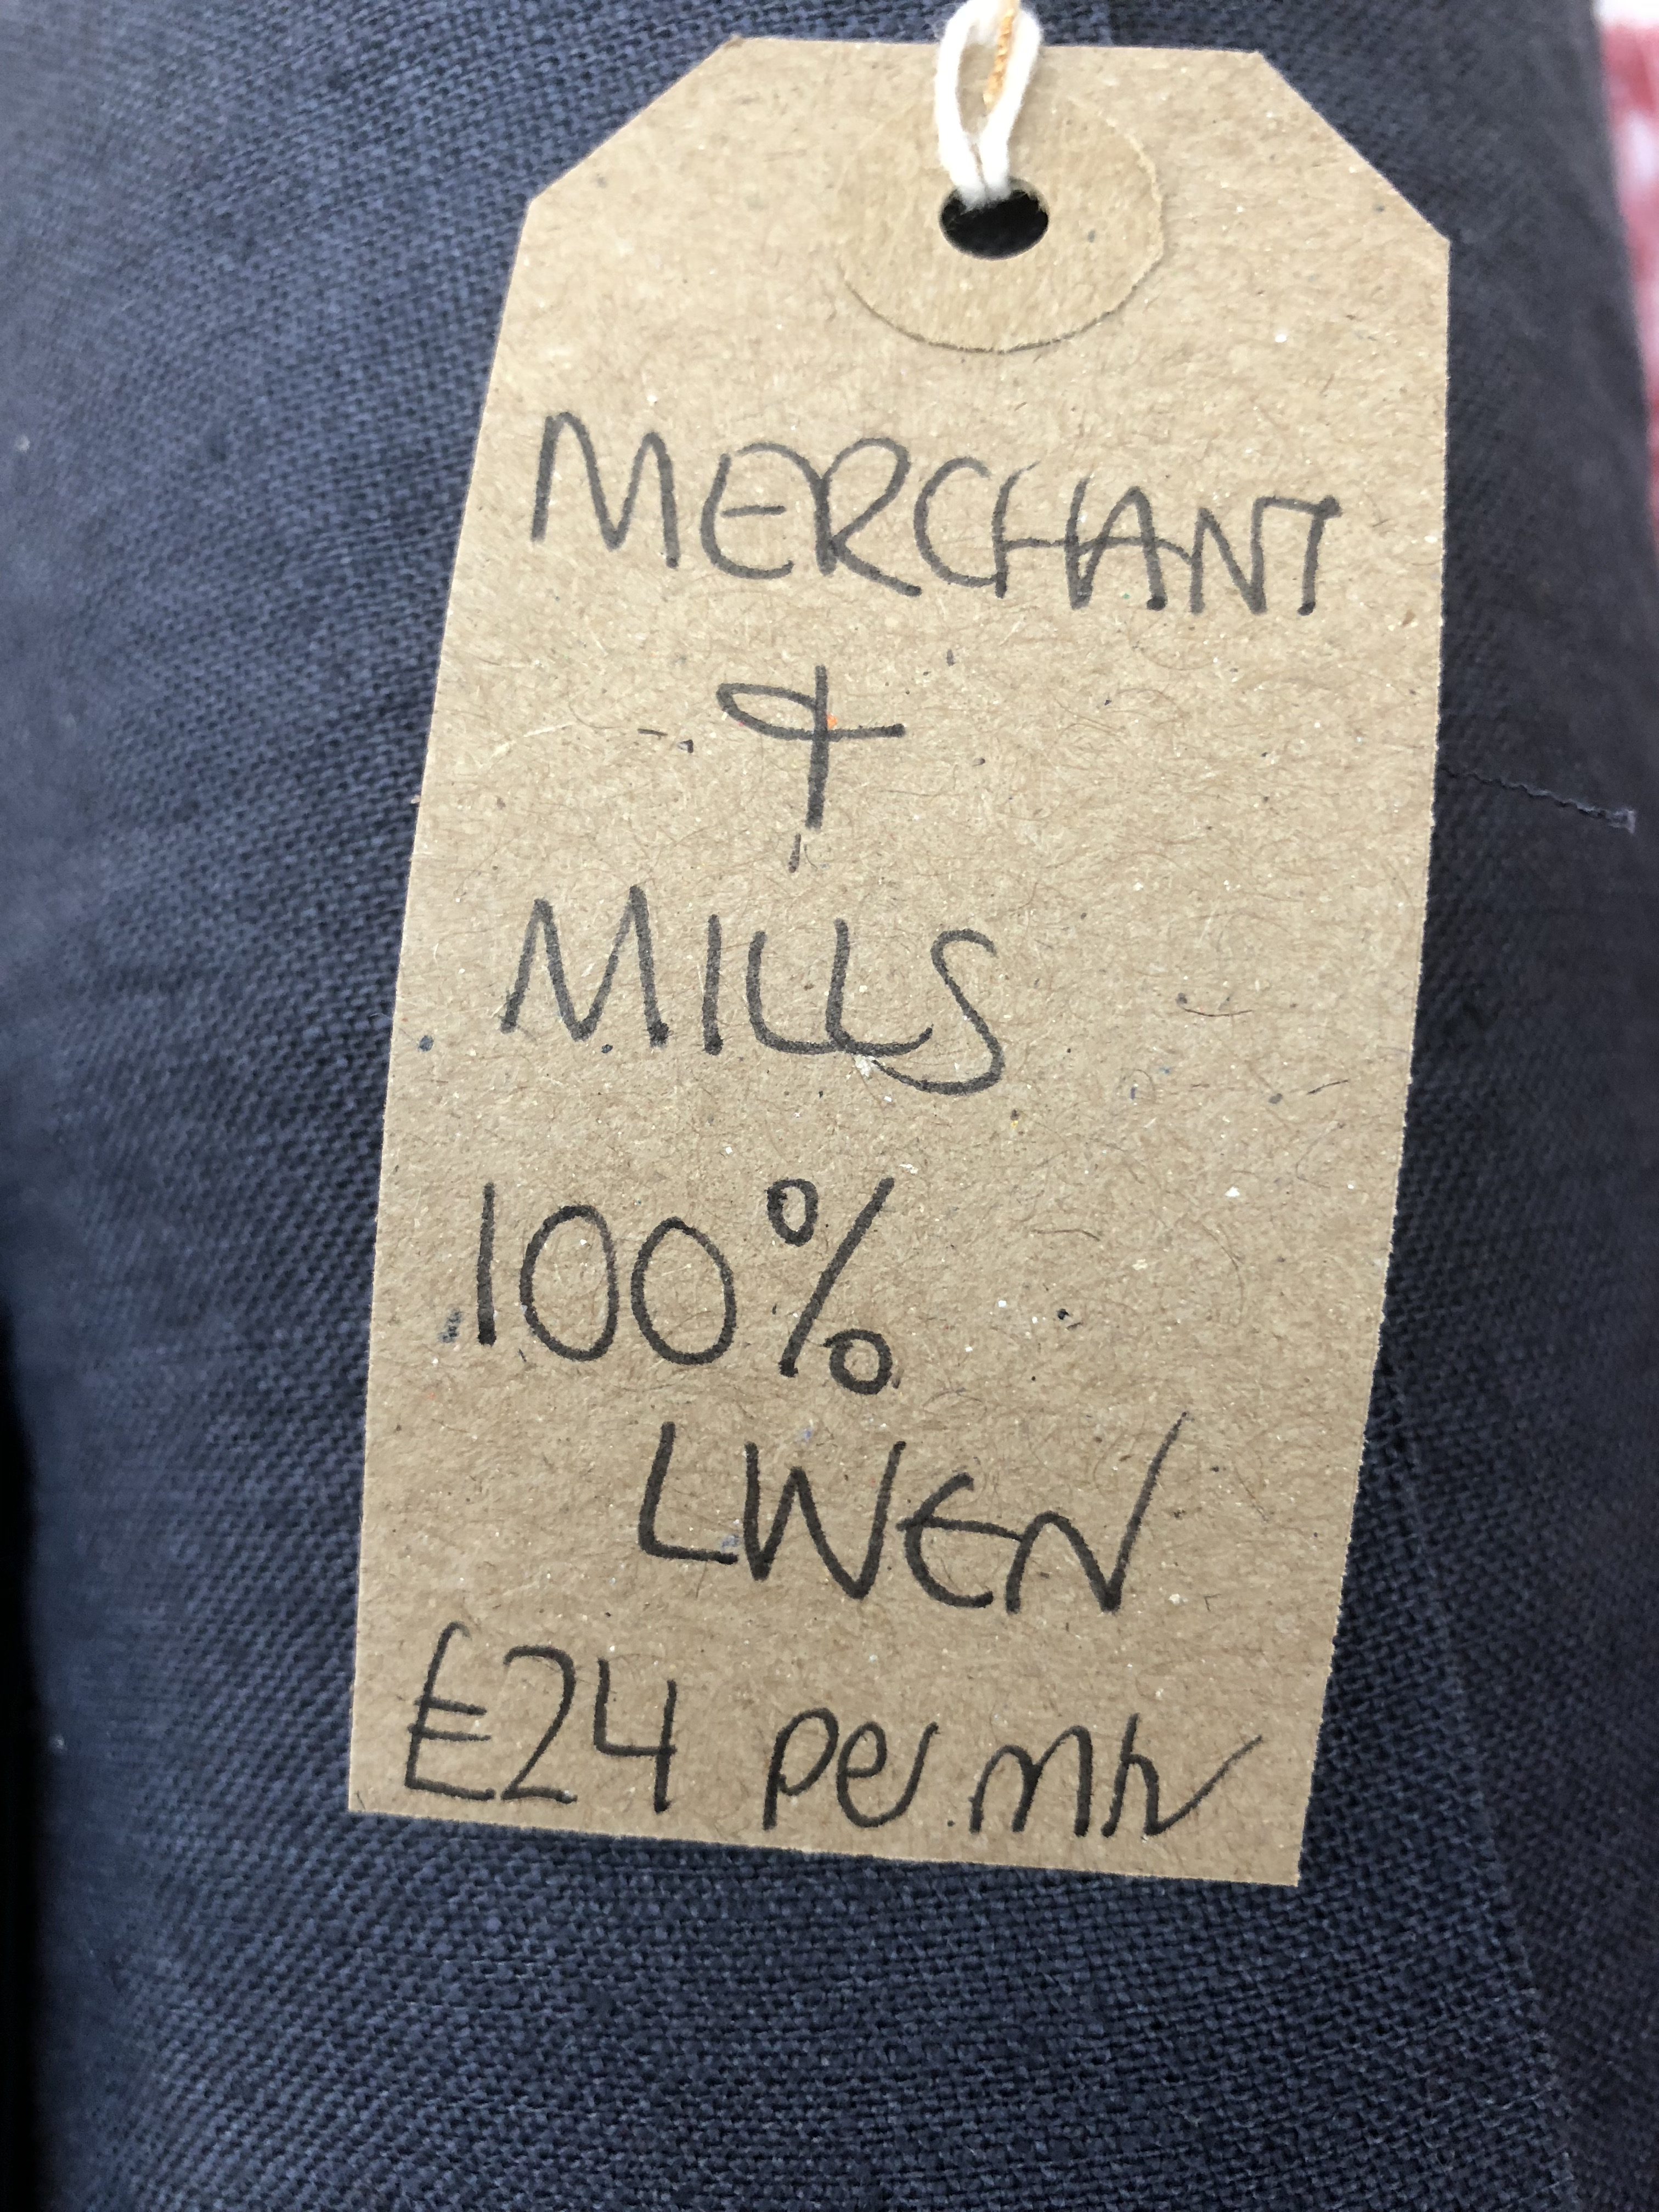 Irish Linen – merchant and mills